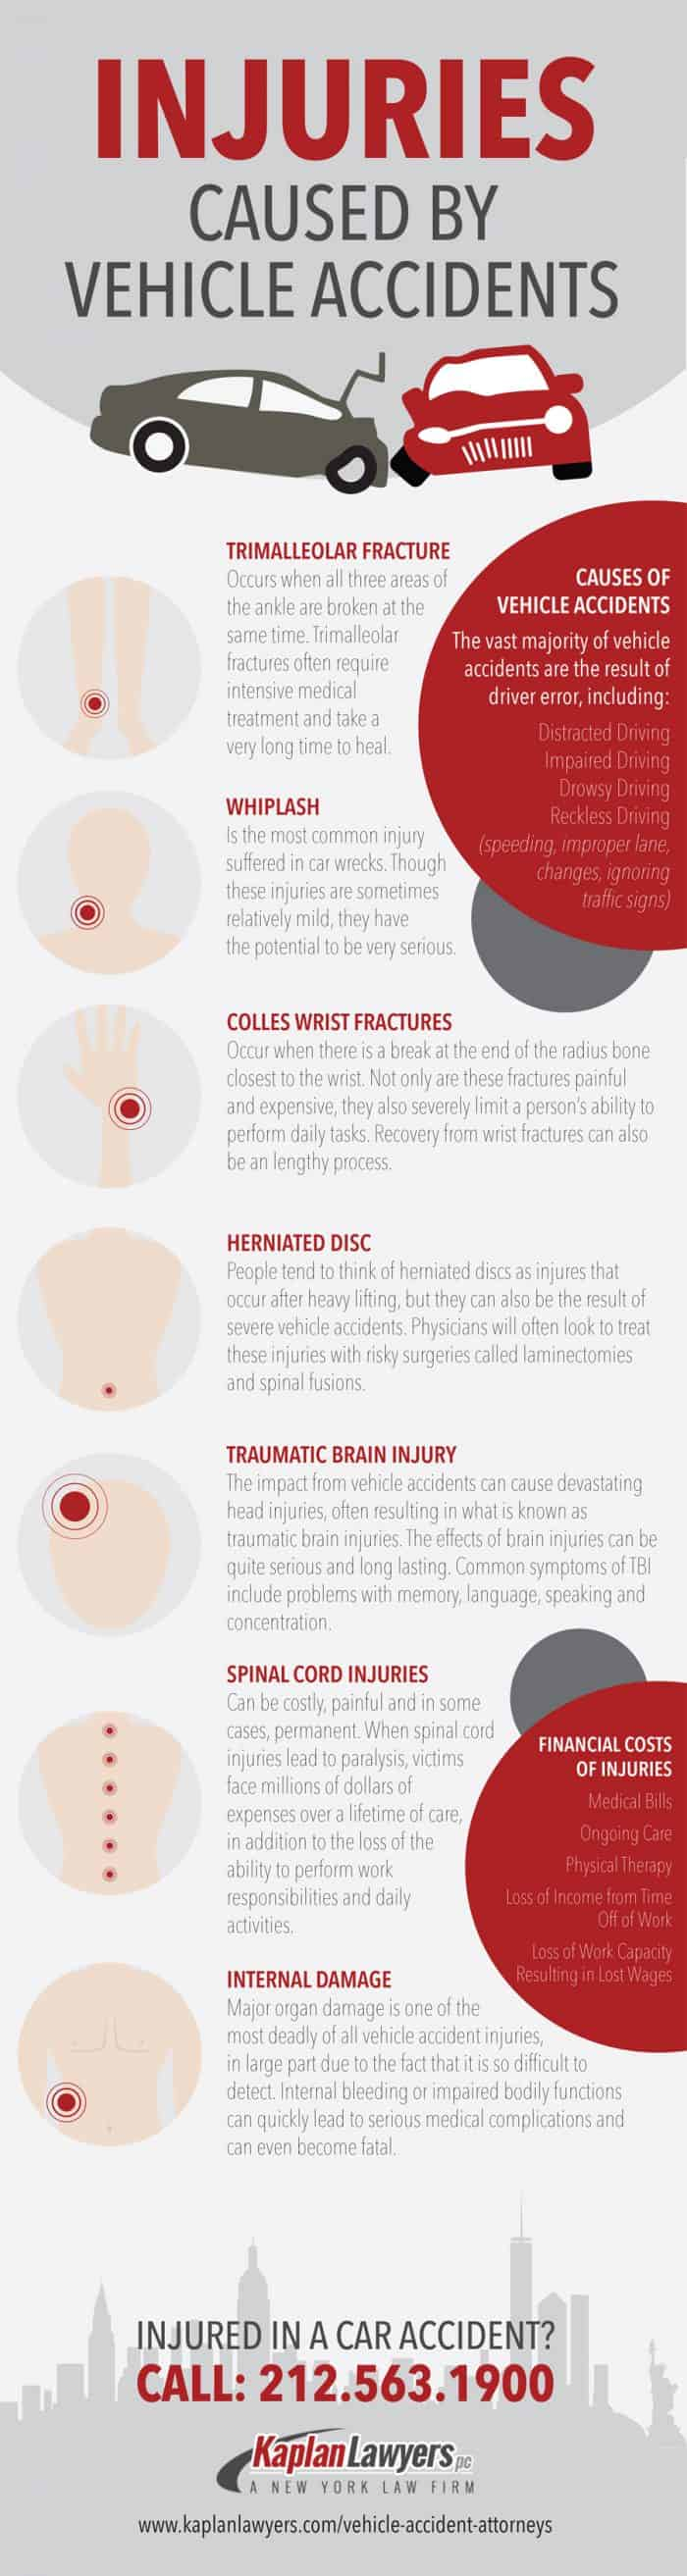 kaplan-car-accidents-injuries-infographic1